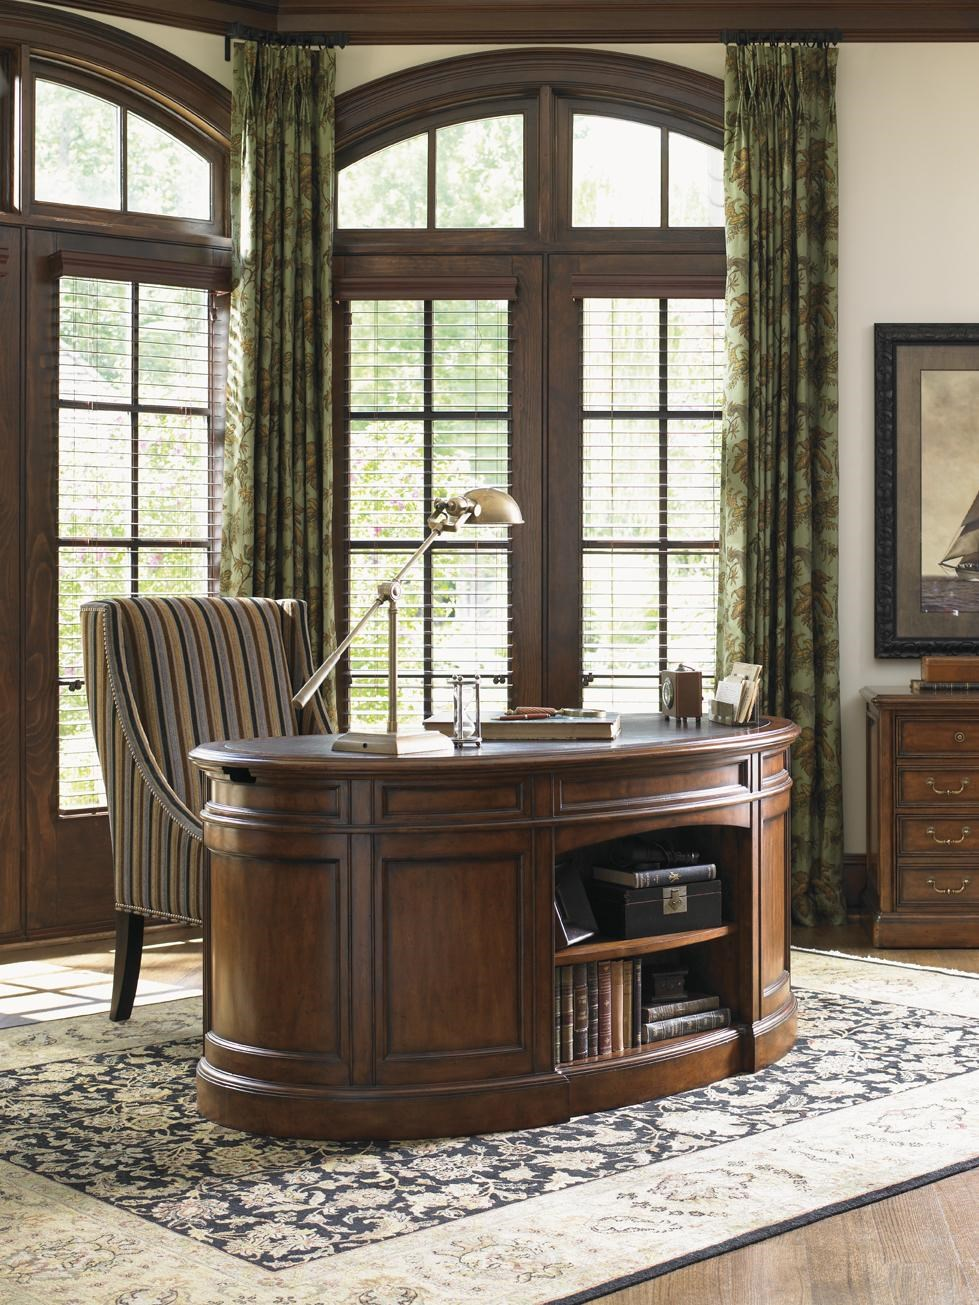 ... Sligh BreckenridgeTelluride Kidney Desk